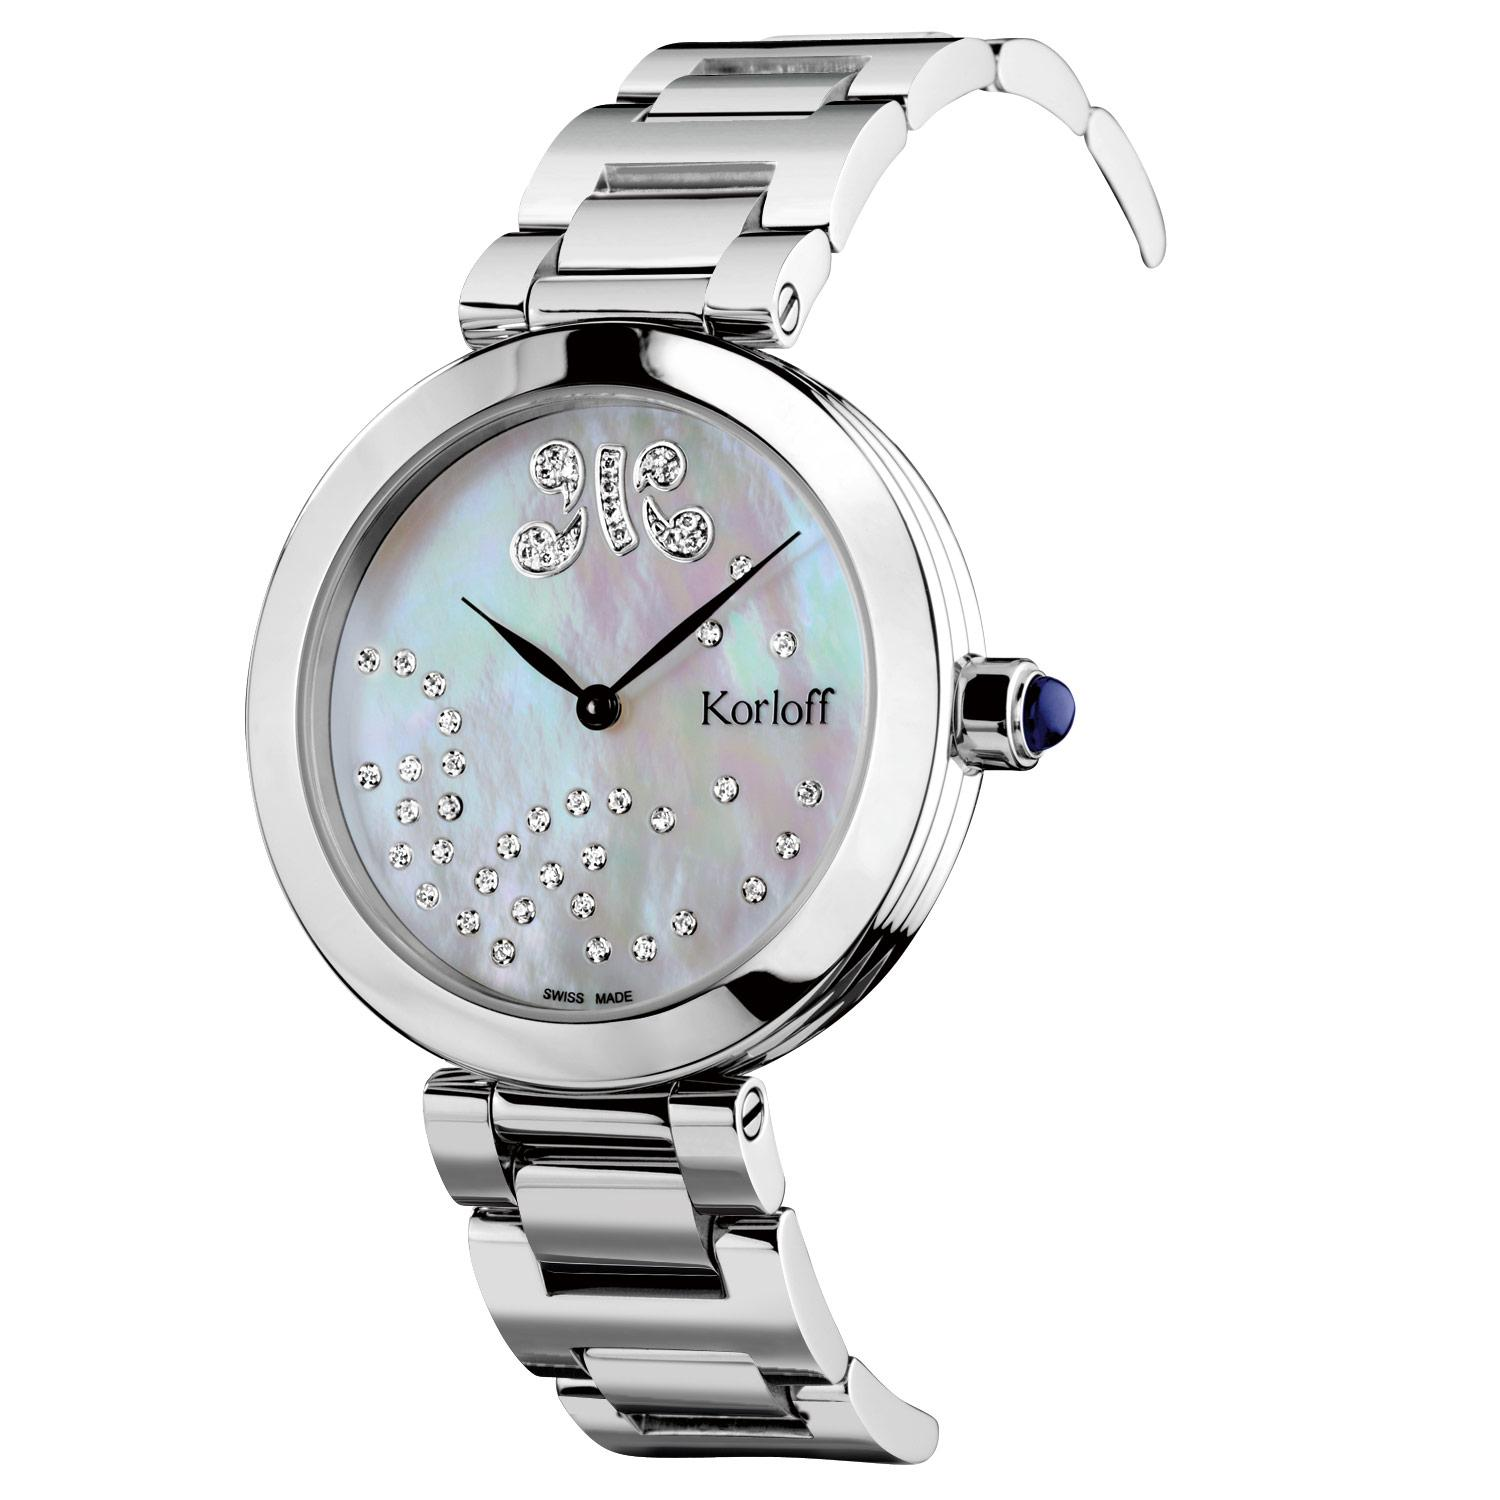 Korloff watches models